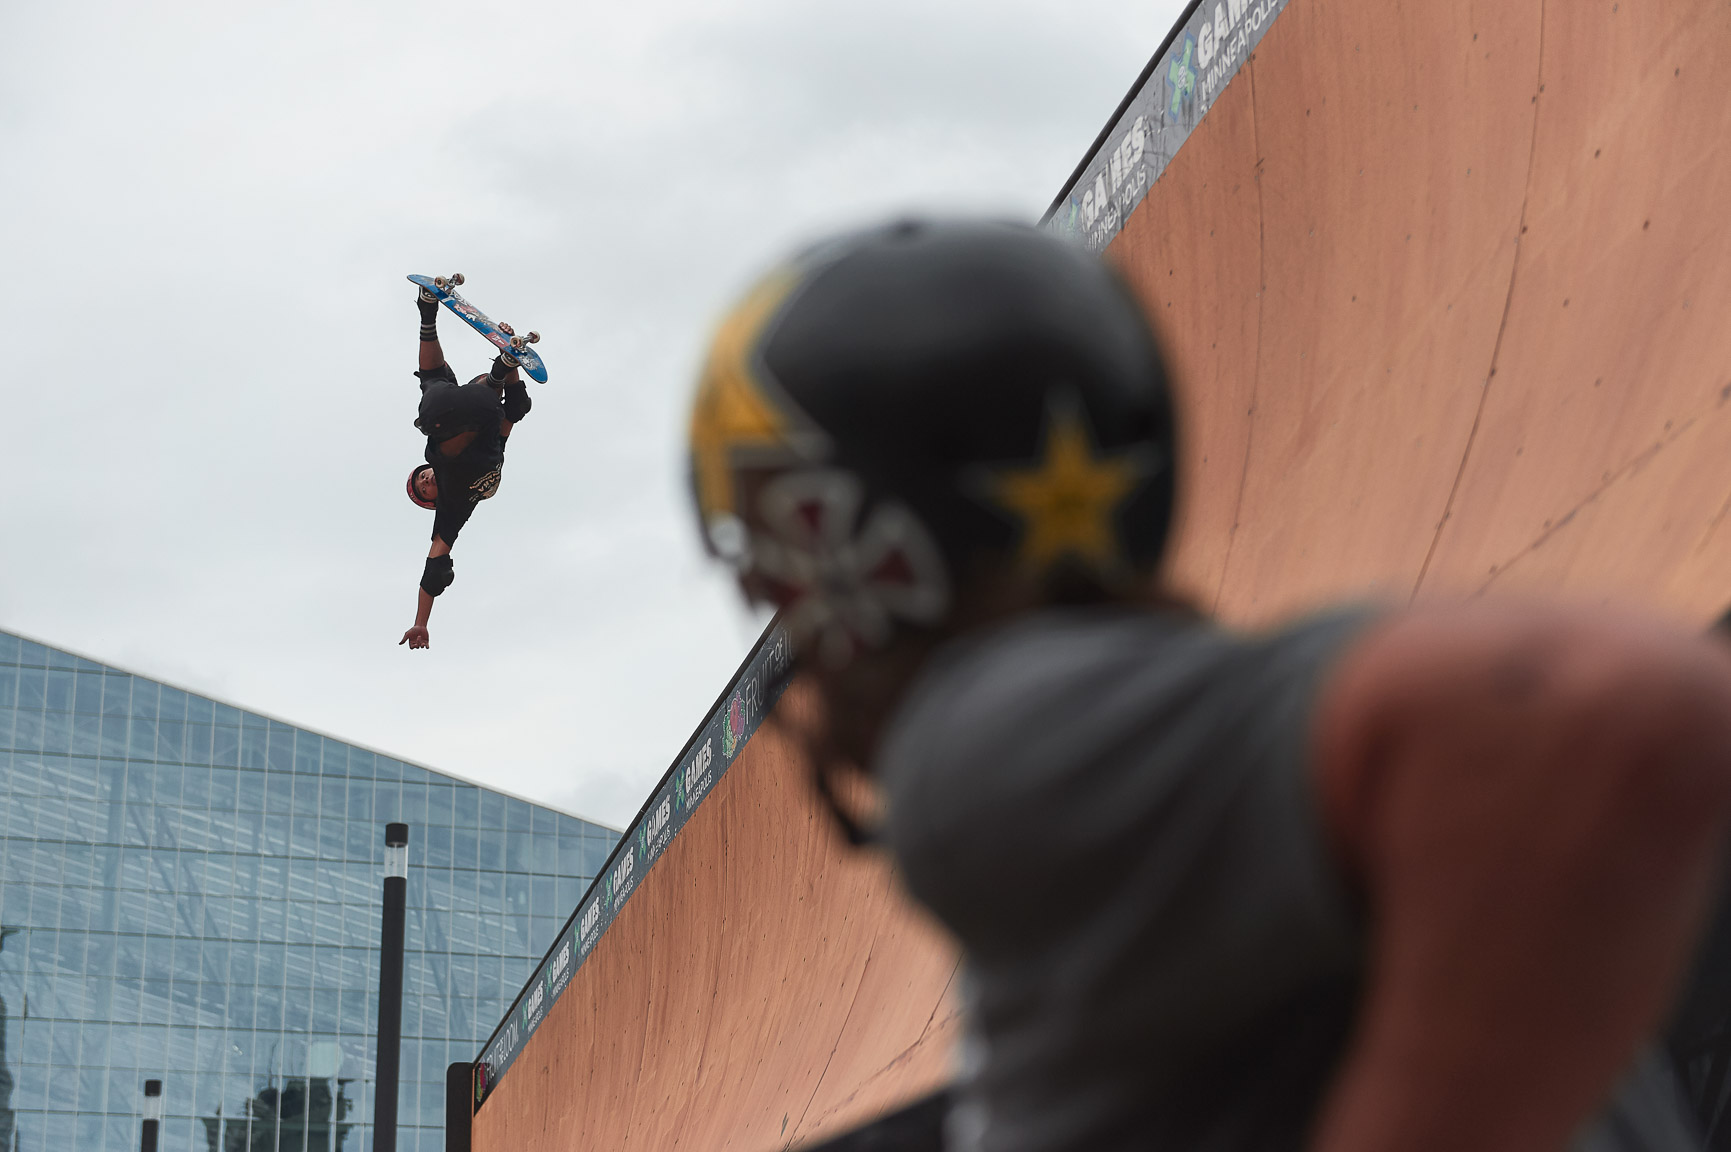 One day ago, Japanese vert skater Moto Shibata arrived at X Games Minneapolis 2017 and posed for a photo on the deck of the vert ramp, unaware of the future. When game time came, Shibata delivered three runs in Skateboard Vert that demonstrated a changing of the guard in the vert ranks. He's now an X Games gold medalist and leading the pack of young and hungry vert skaters at X Games.